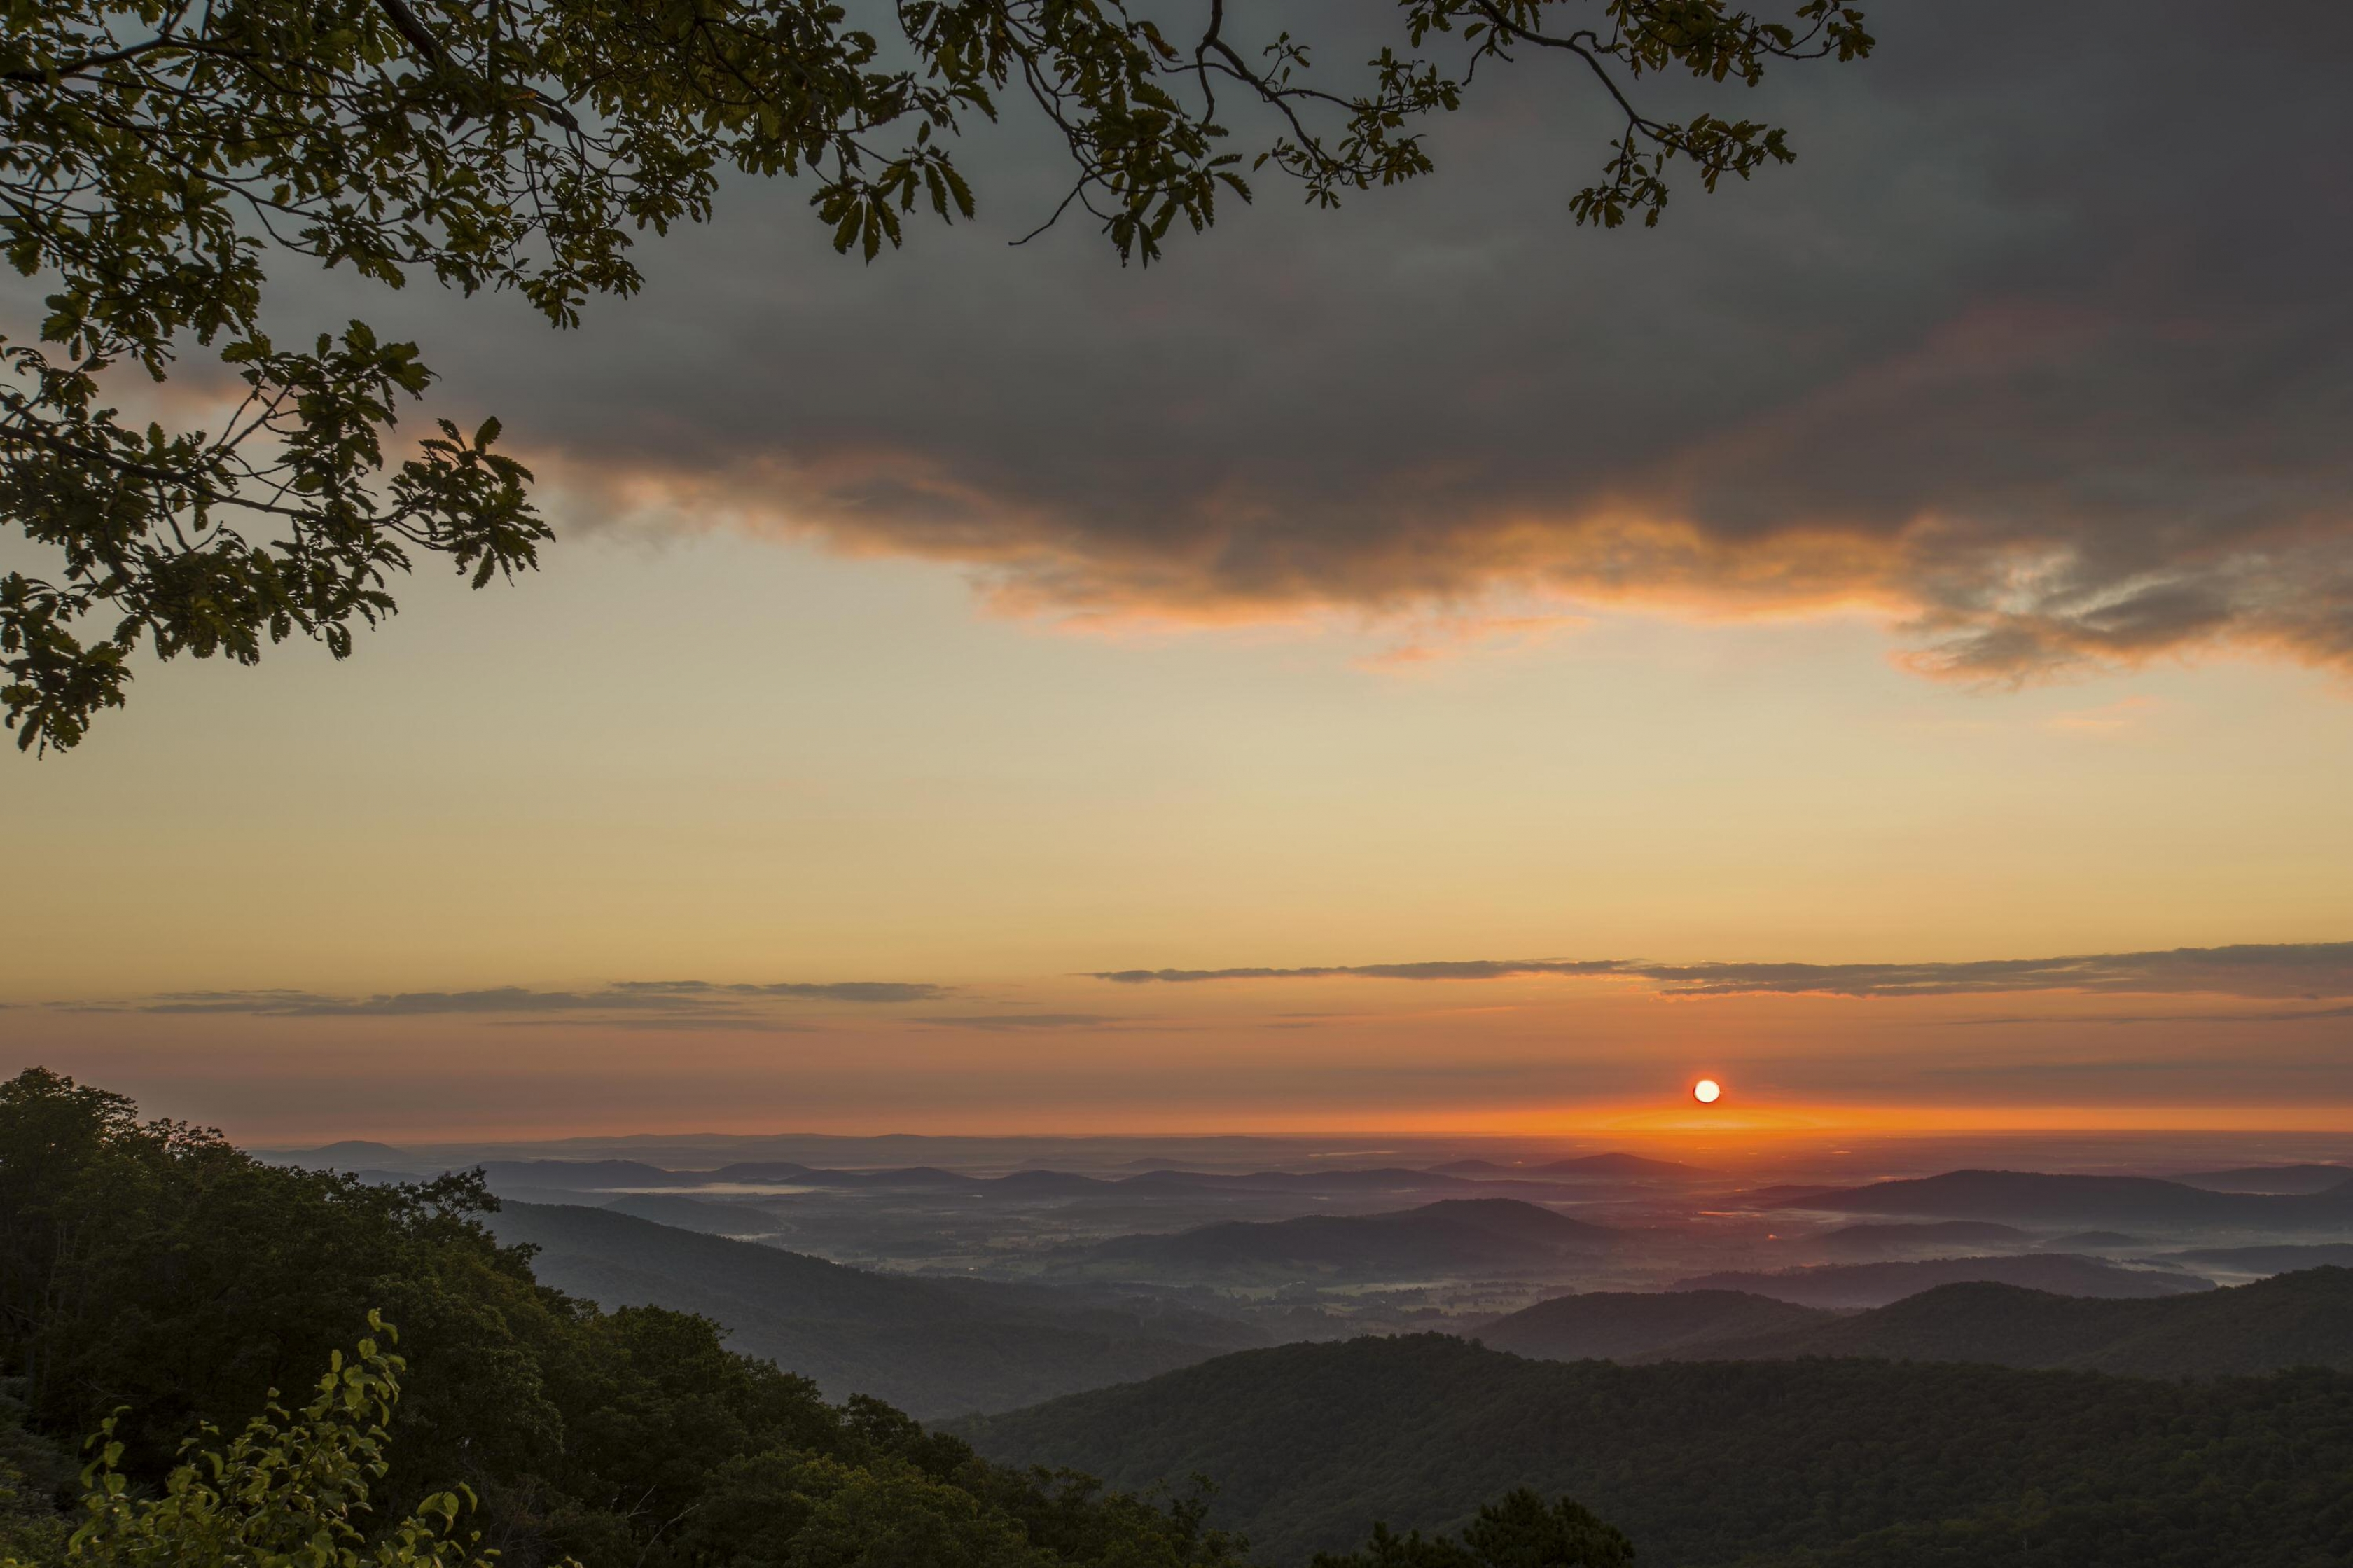 Orange sun rising over the misty valley from Hazel Mountain Overlook at Shenandoah National Park